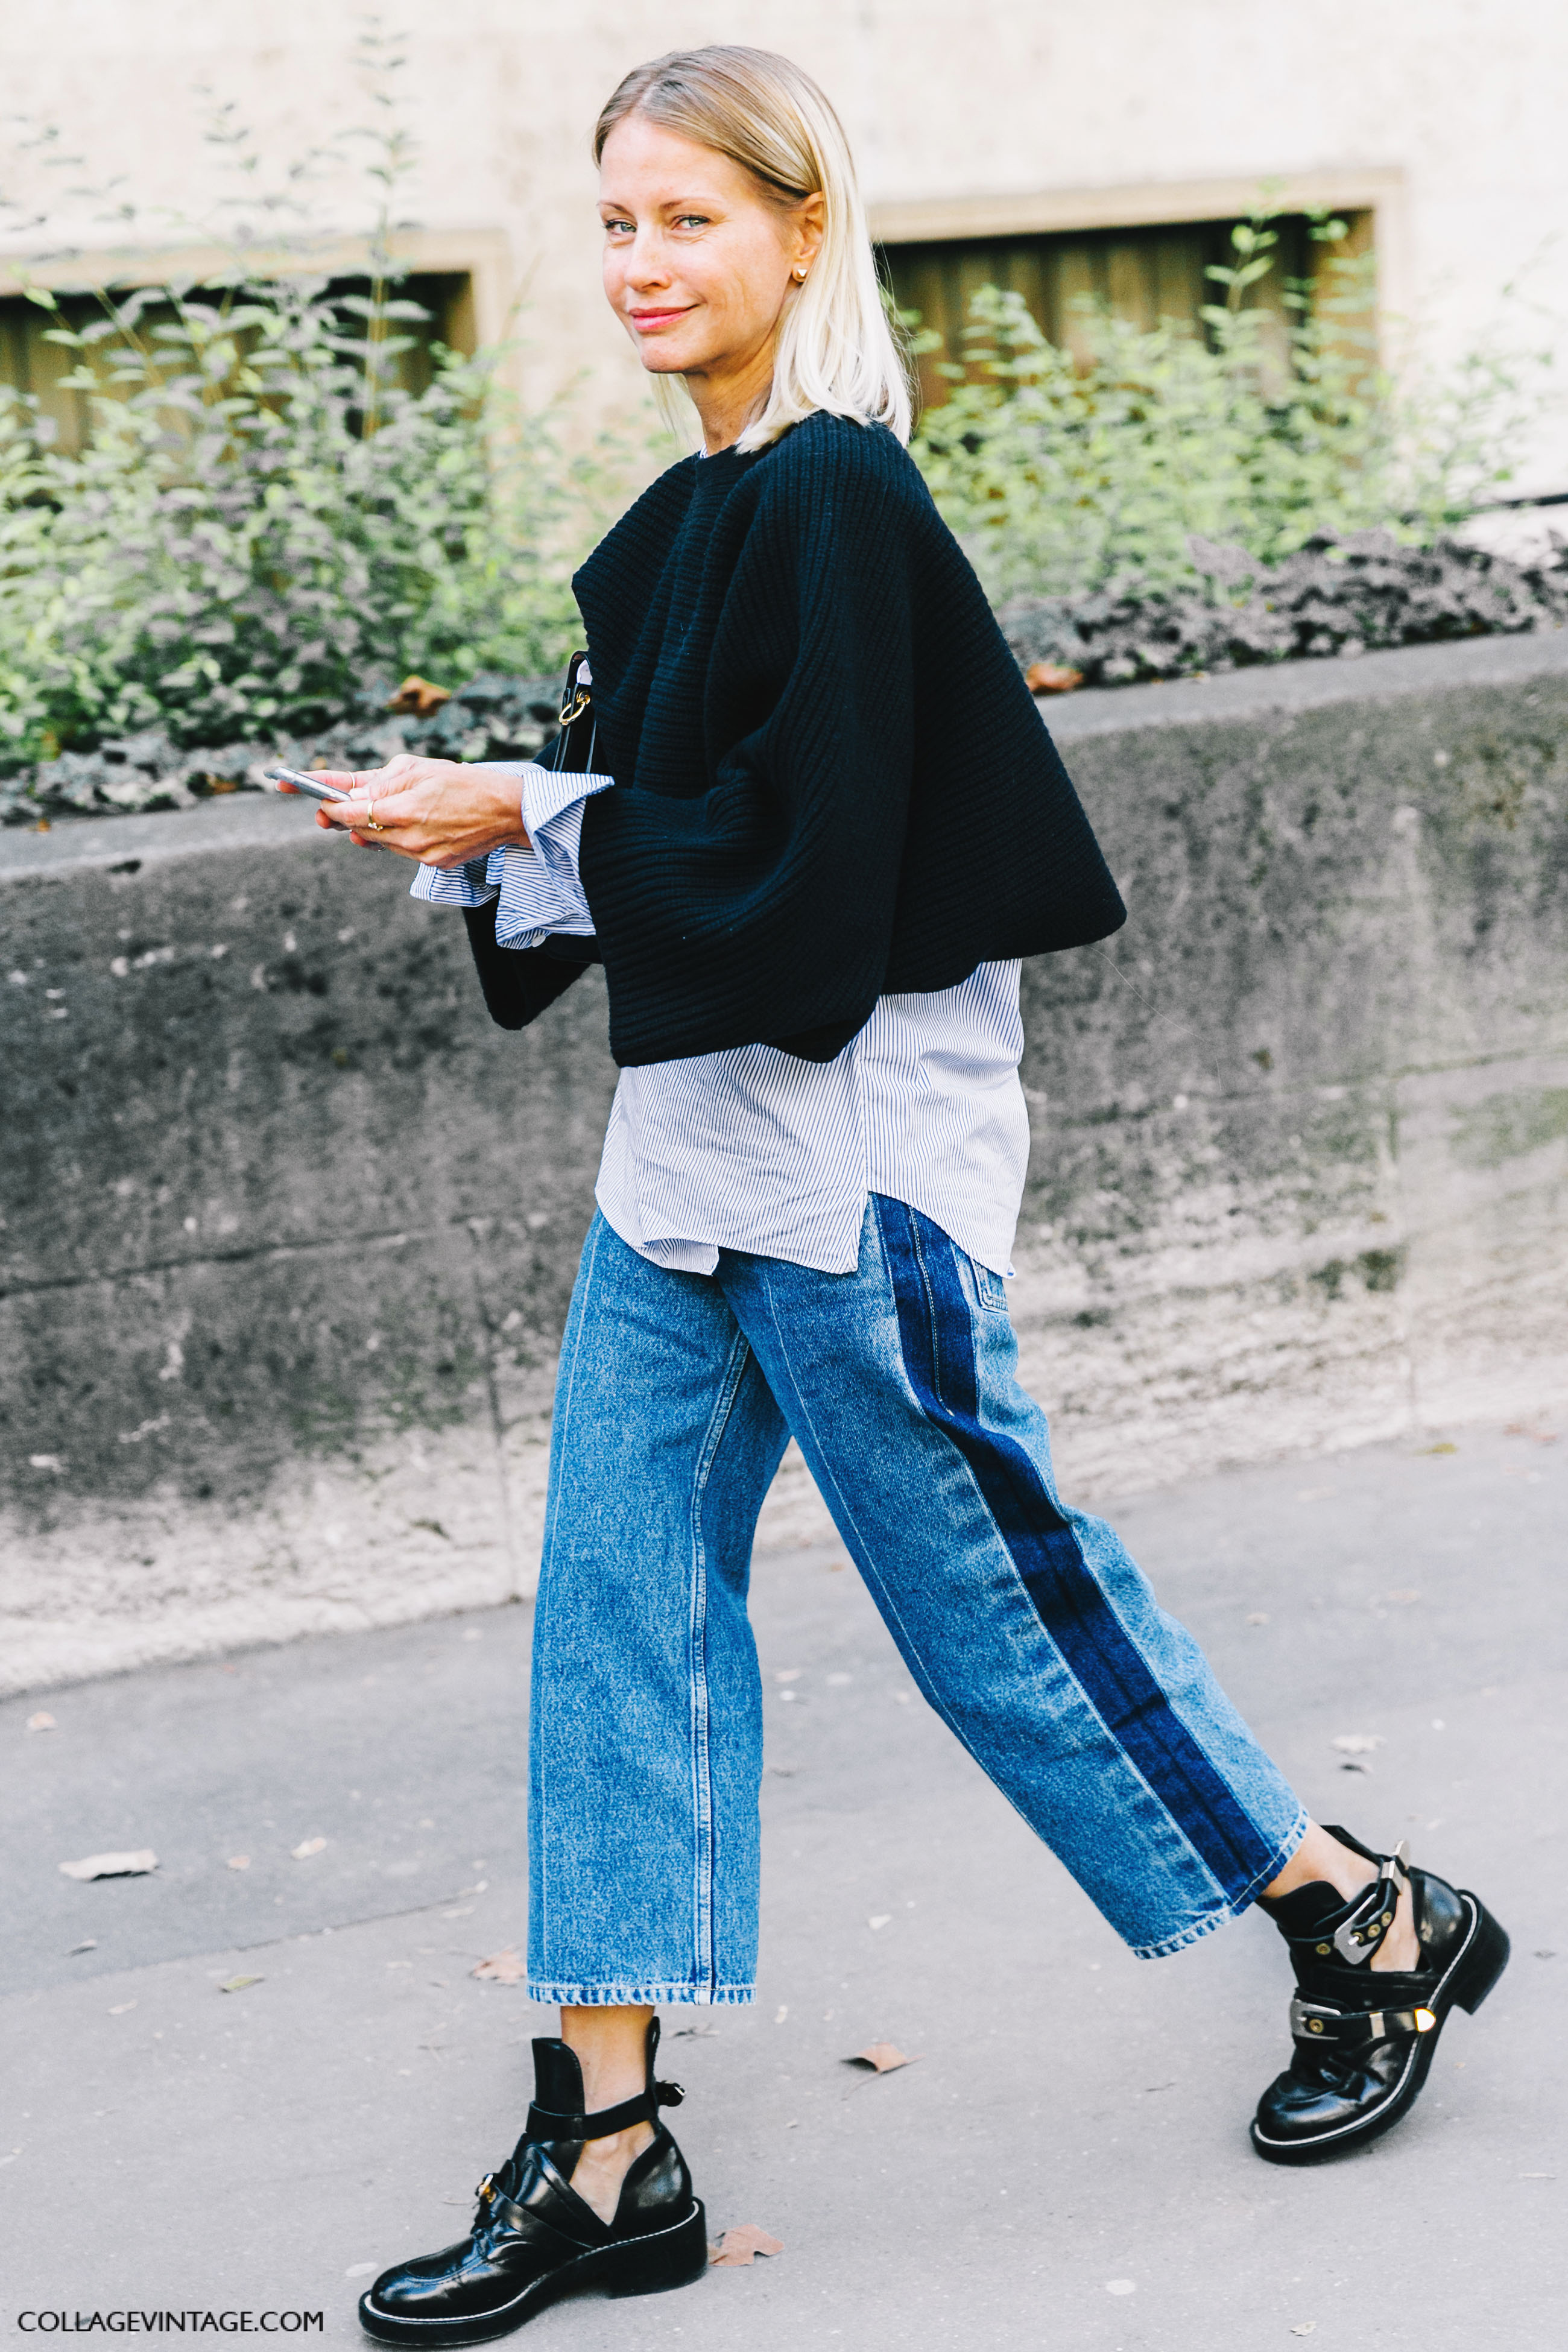 pfw-paris_fashion_week_ss17-street_style-outfits-collage_vintage-olympia_letan-hermes-stella_mccartney-sacai-78